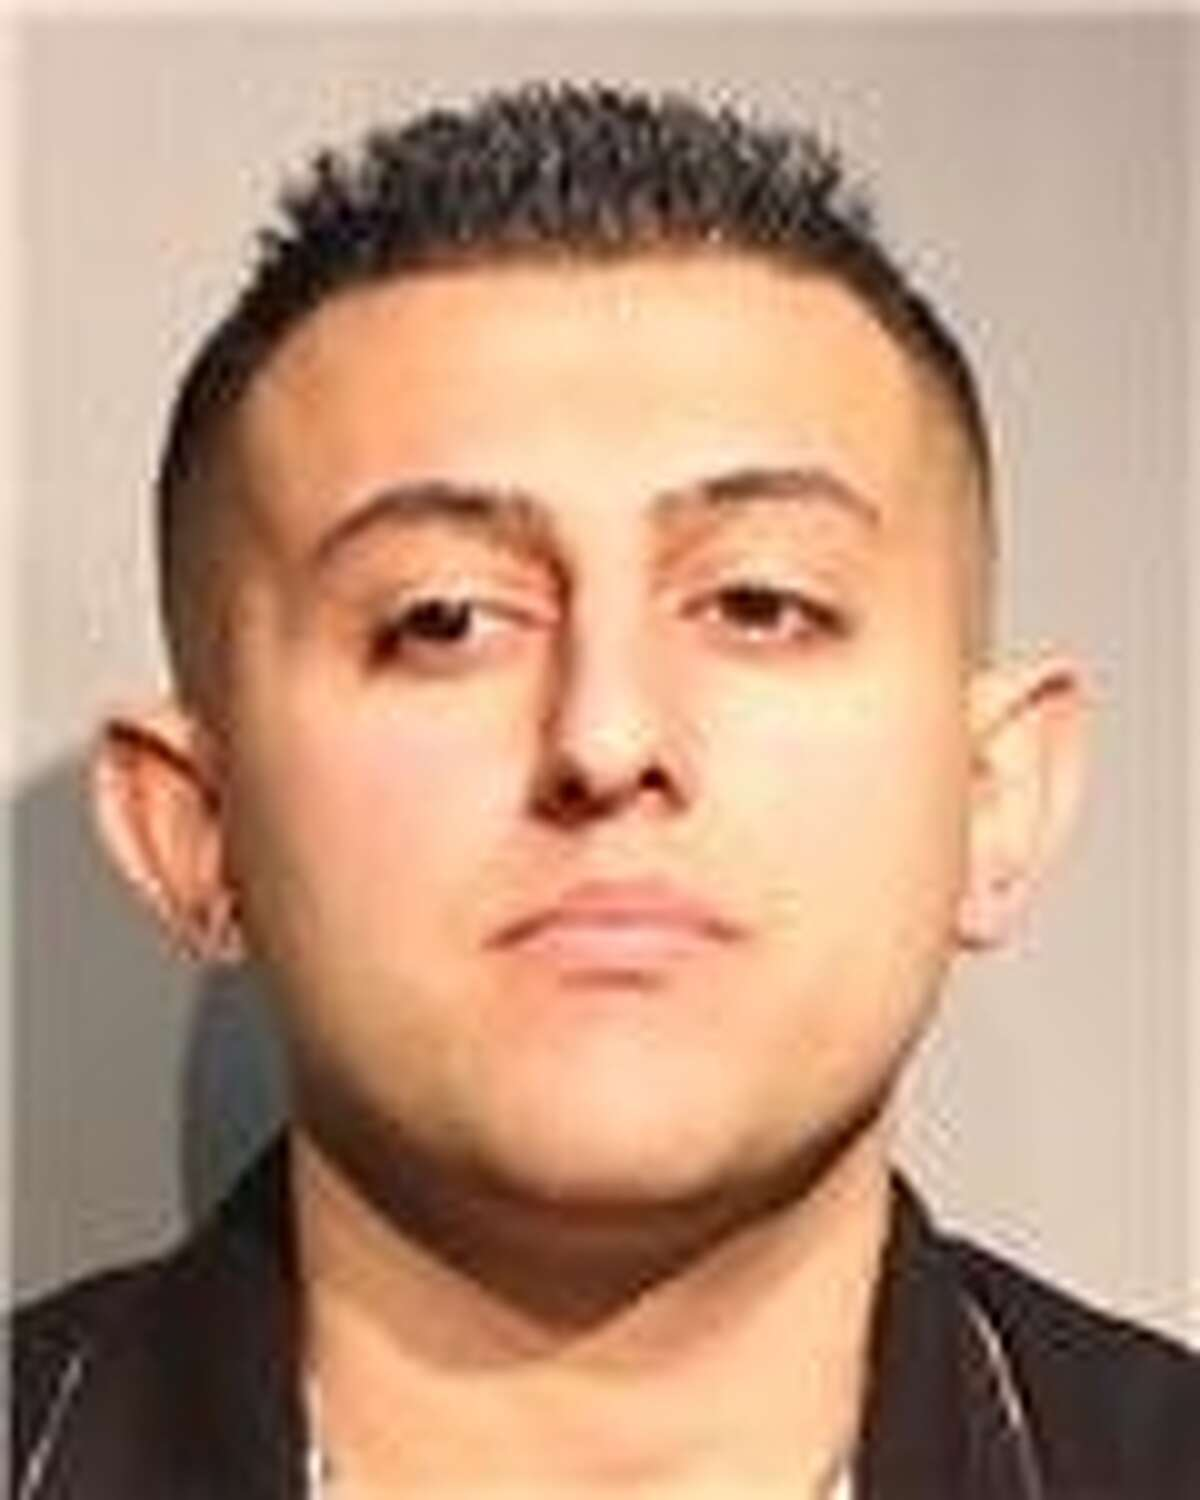 Nauman Hussain claimed to be his brother. (State Police photo)